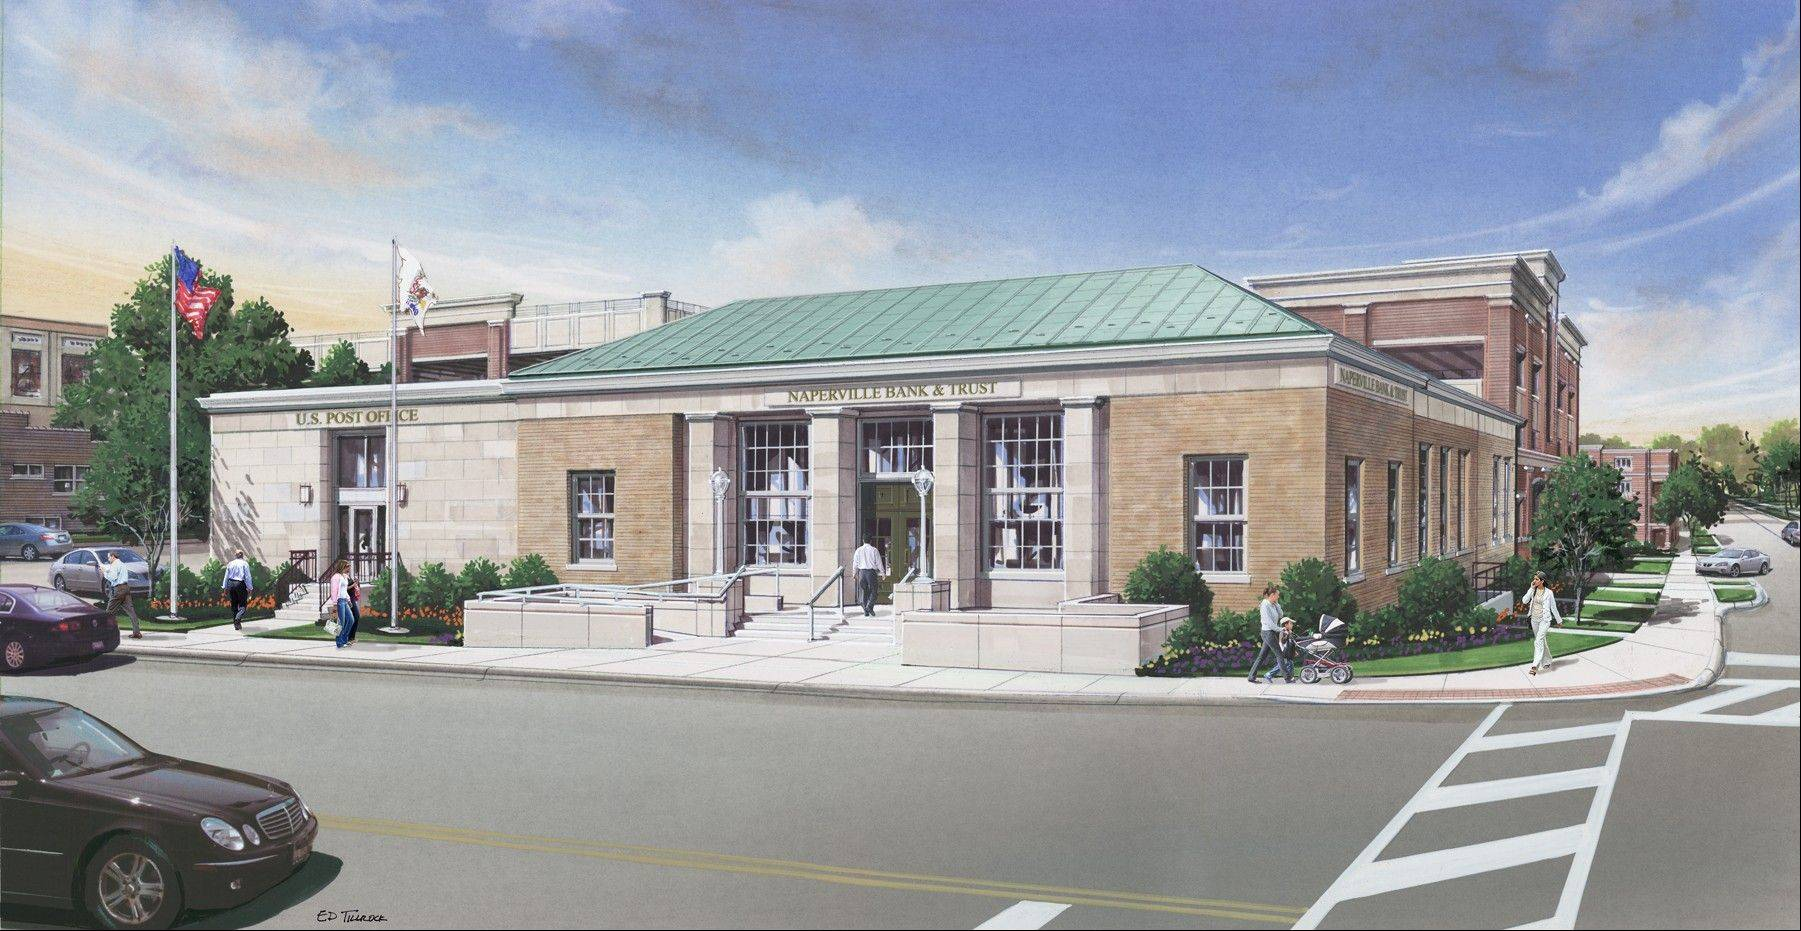 Naperville's 71-year-old post office gets facelift, bank